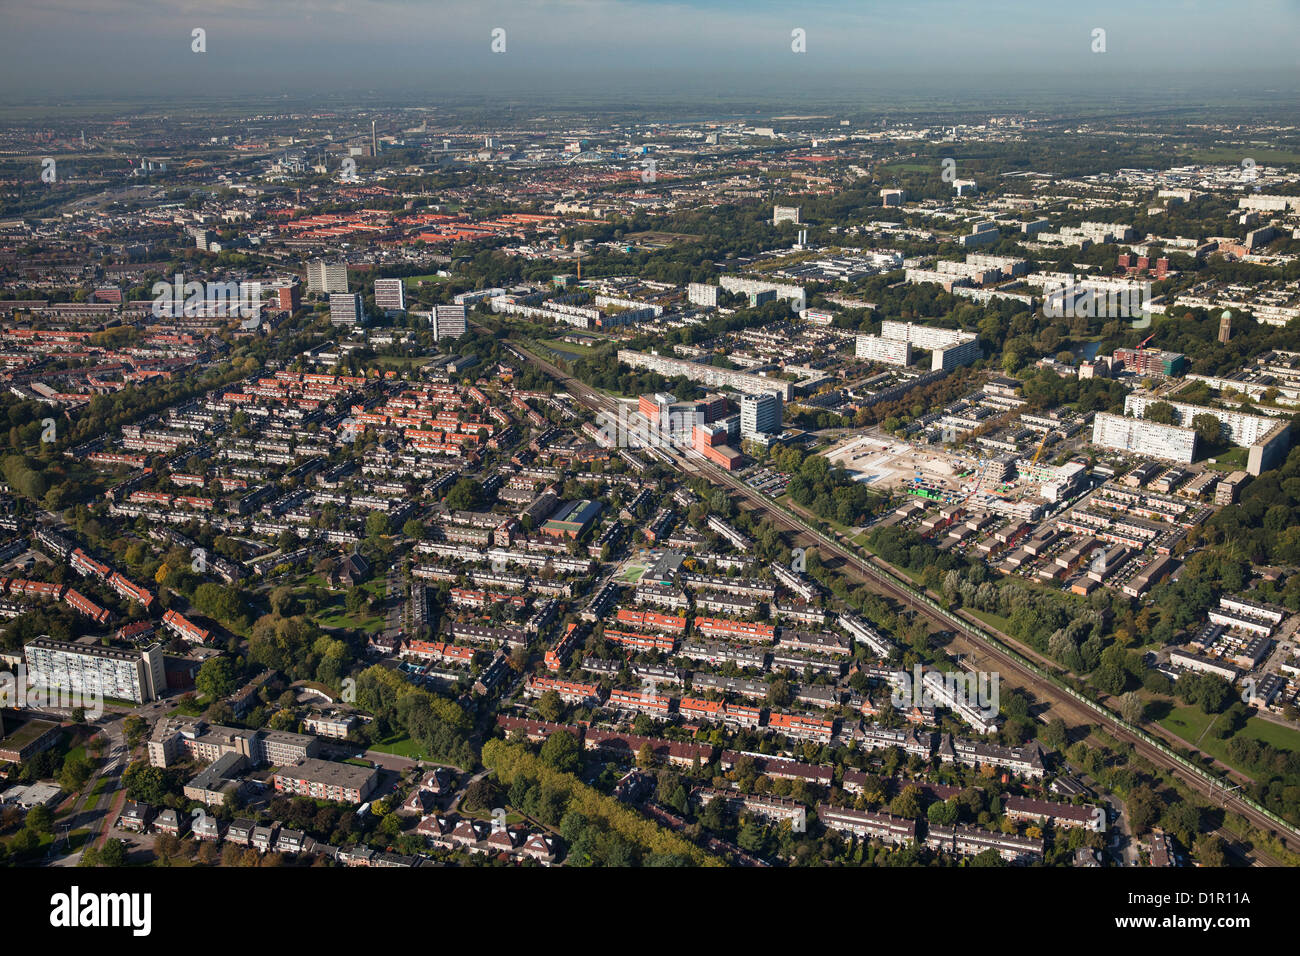 The Netherlands, Utrecht, Residential districts in the northern part of the city. Aerial. - Stock Image